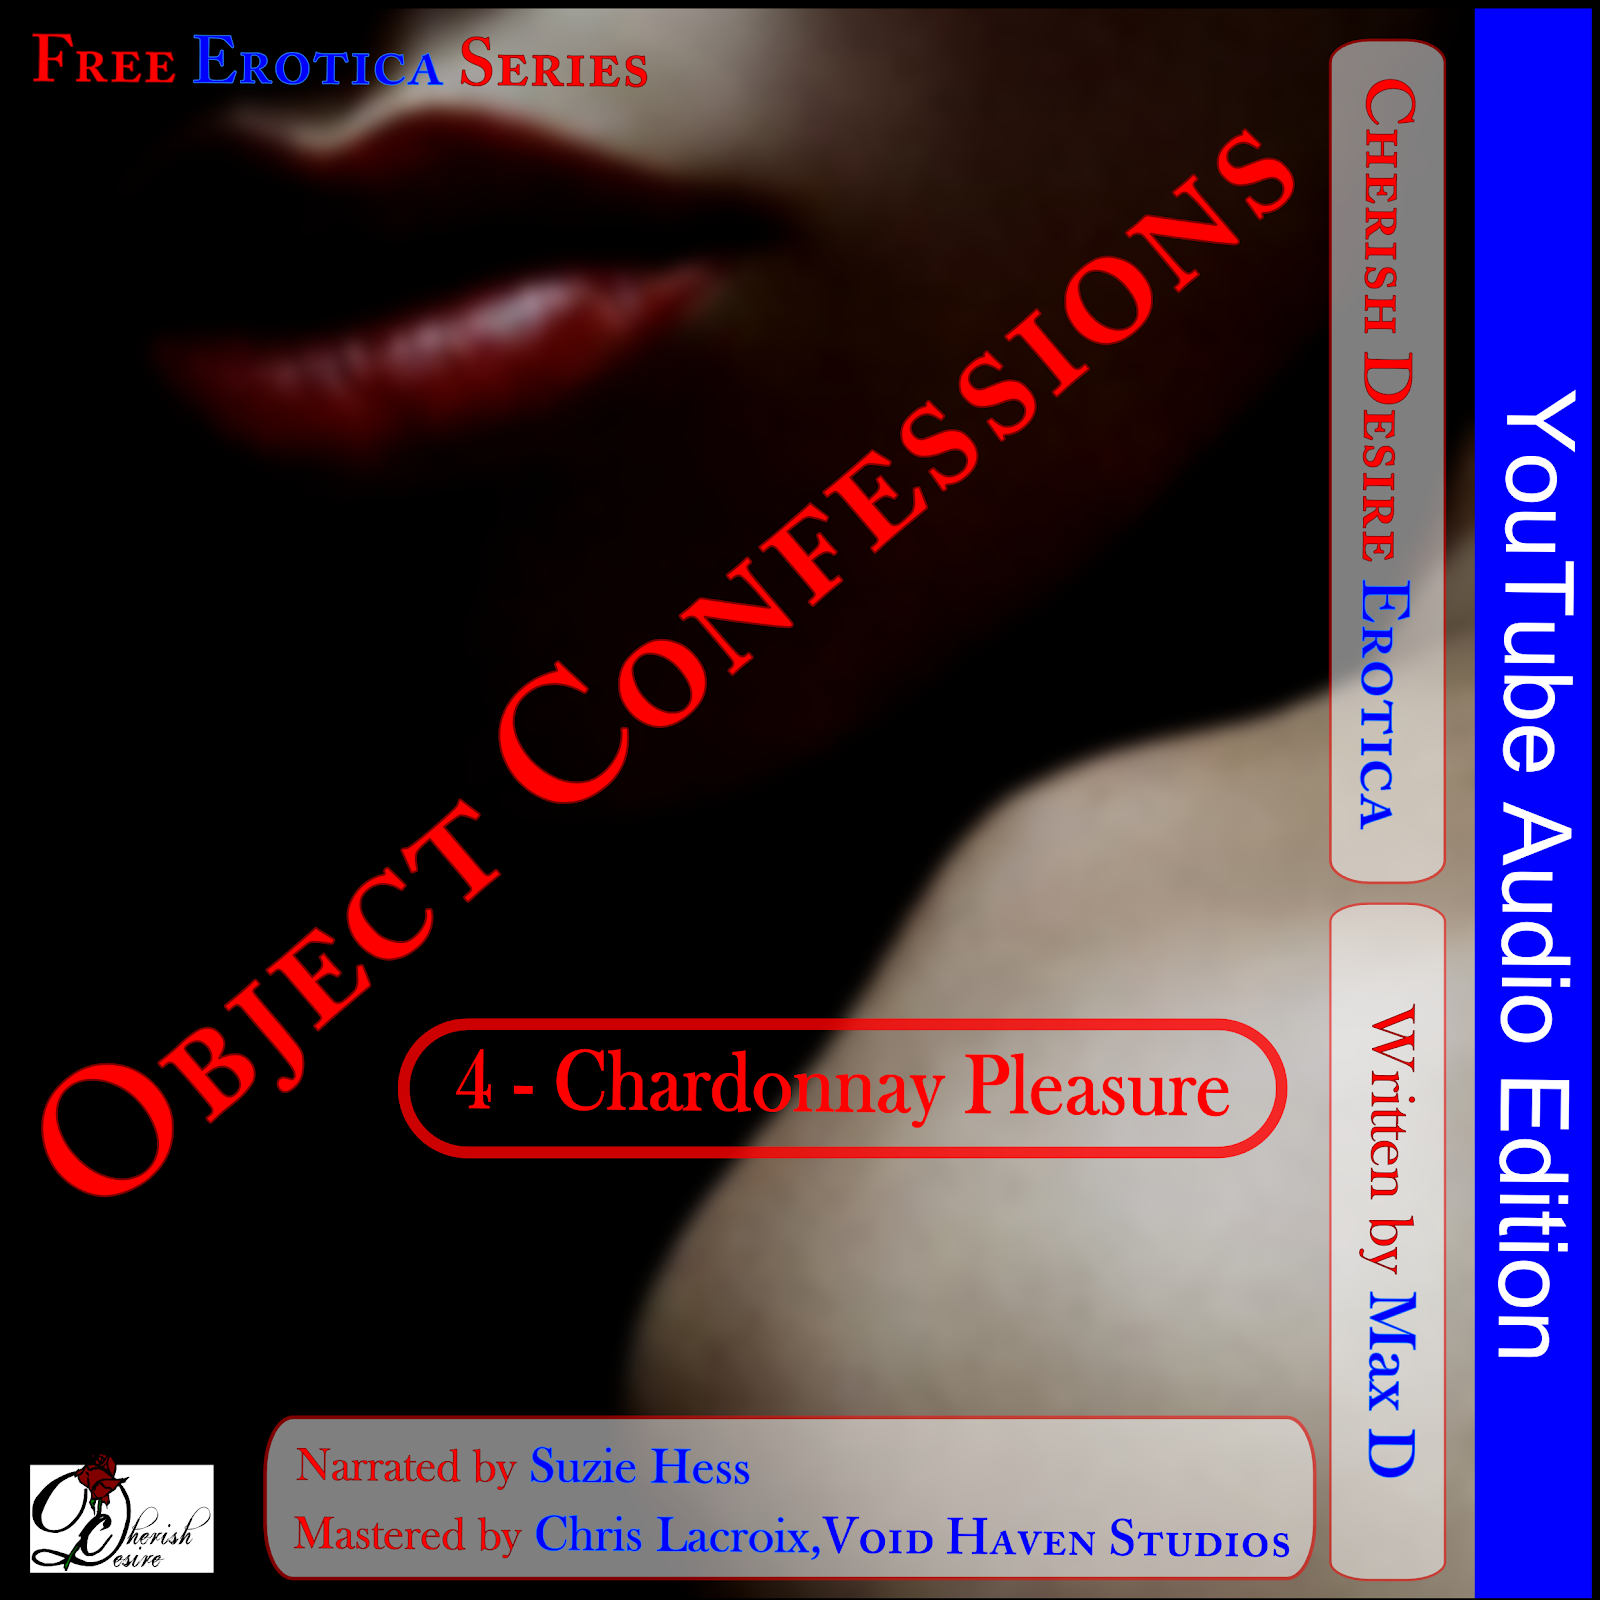 Cherish Desire: Very Dirty Stories YouTube Free Erotica Audio Series: Object Confessions 4: Chardonnay Pleasure, Max D, erotica